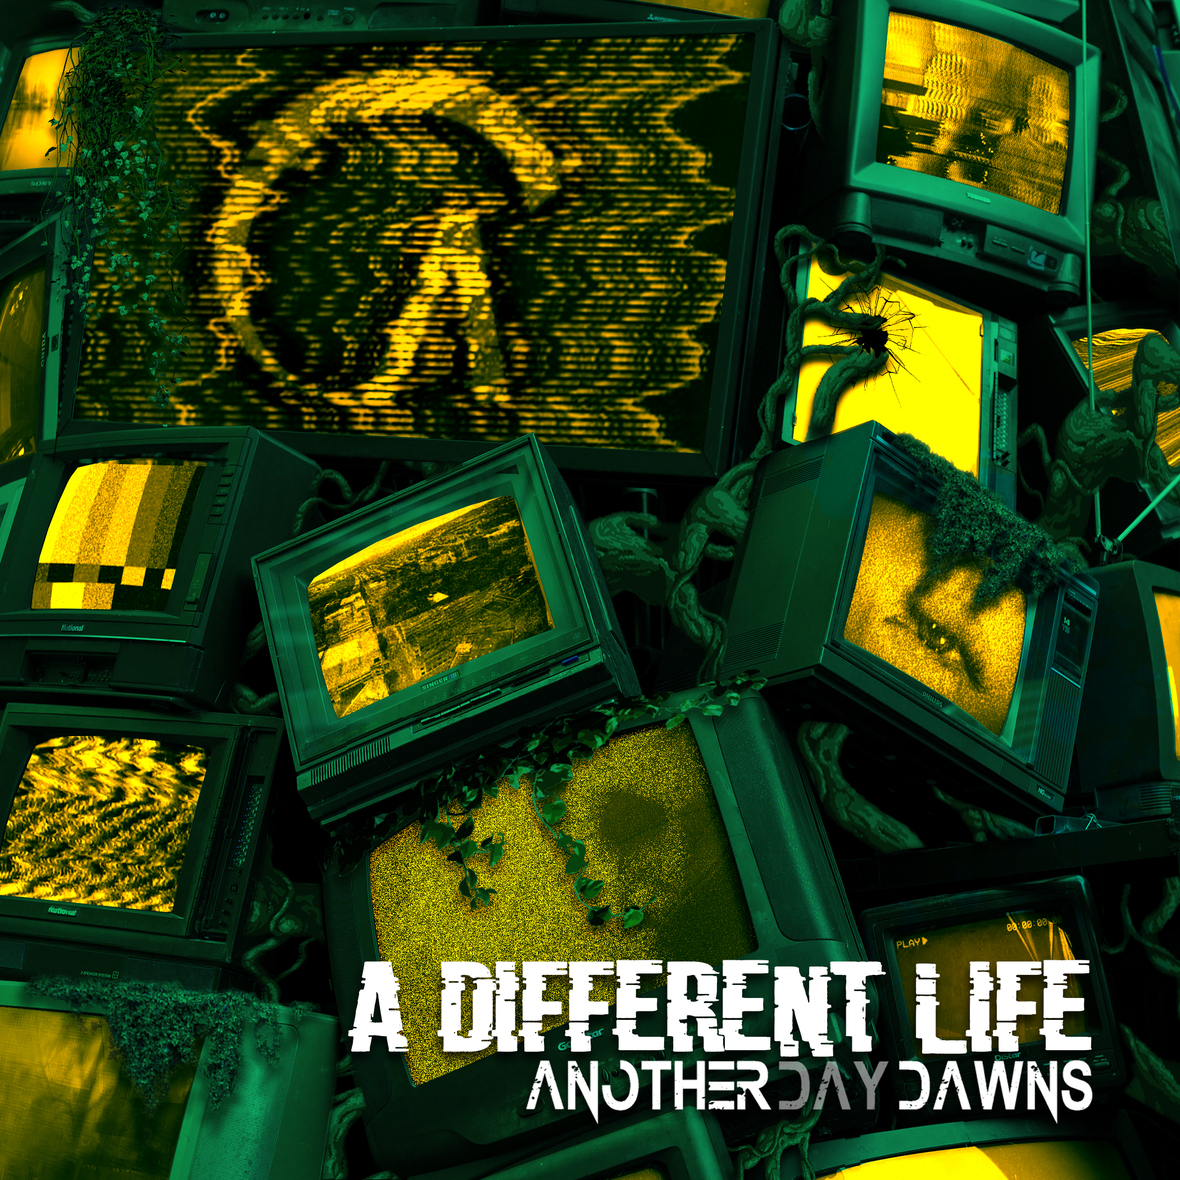 A different life 10point